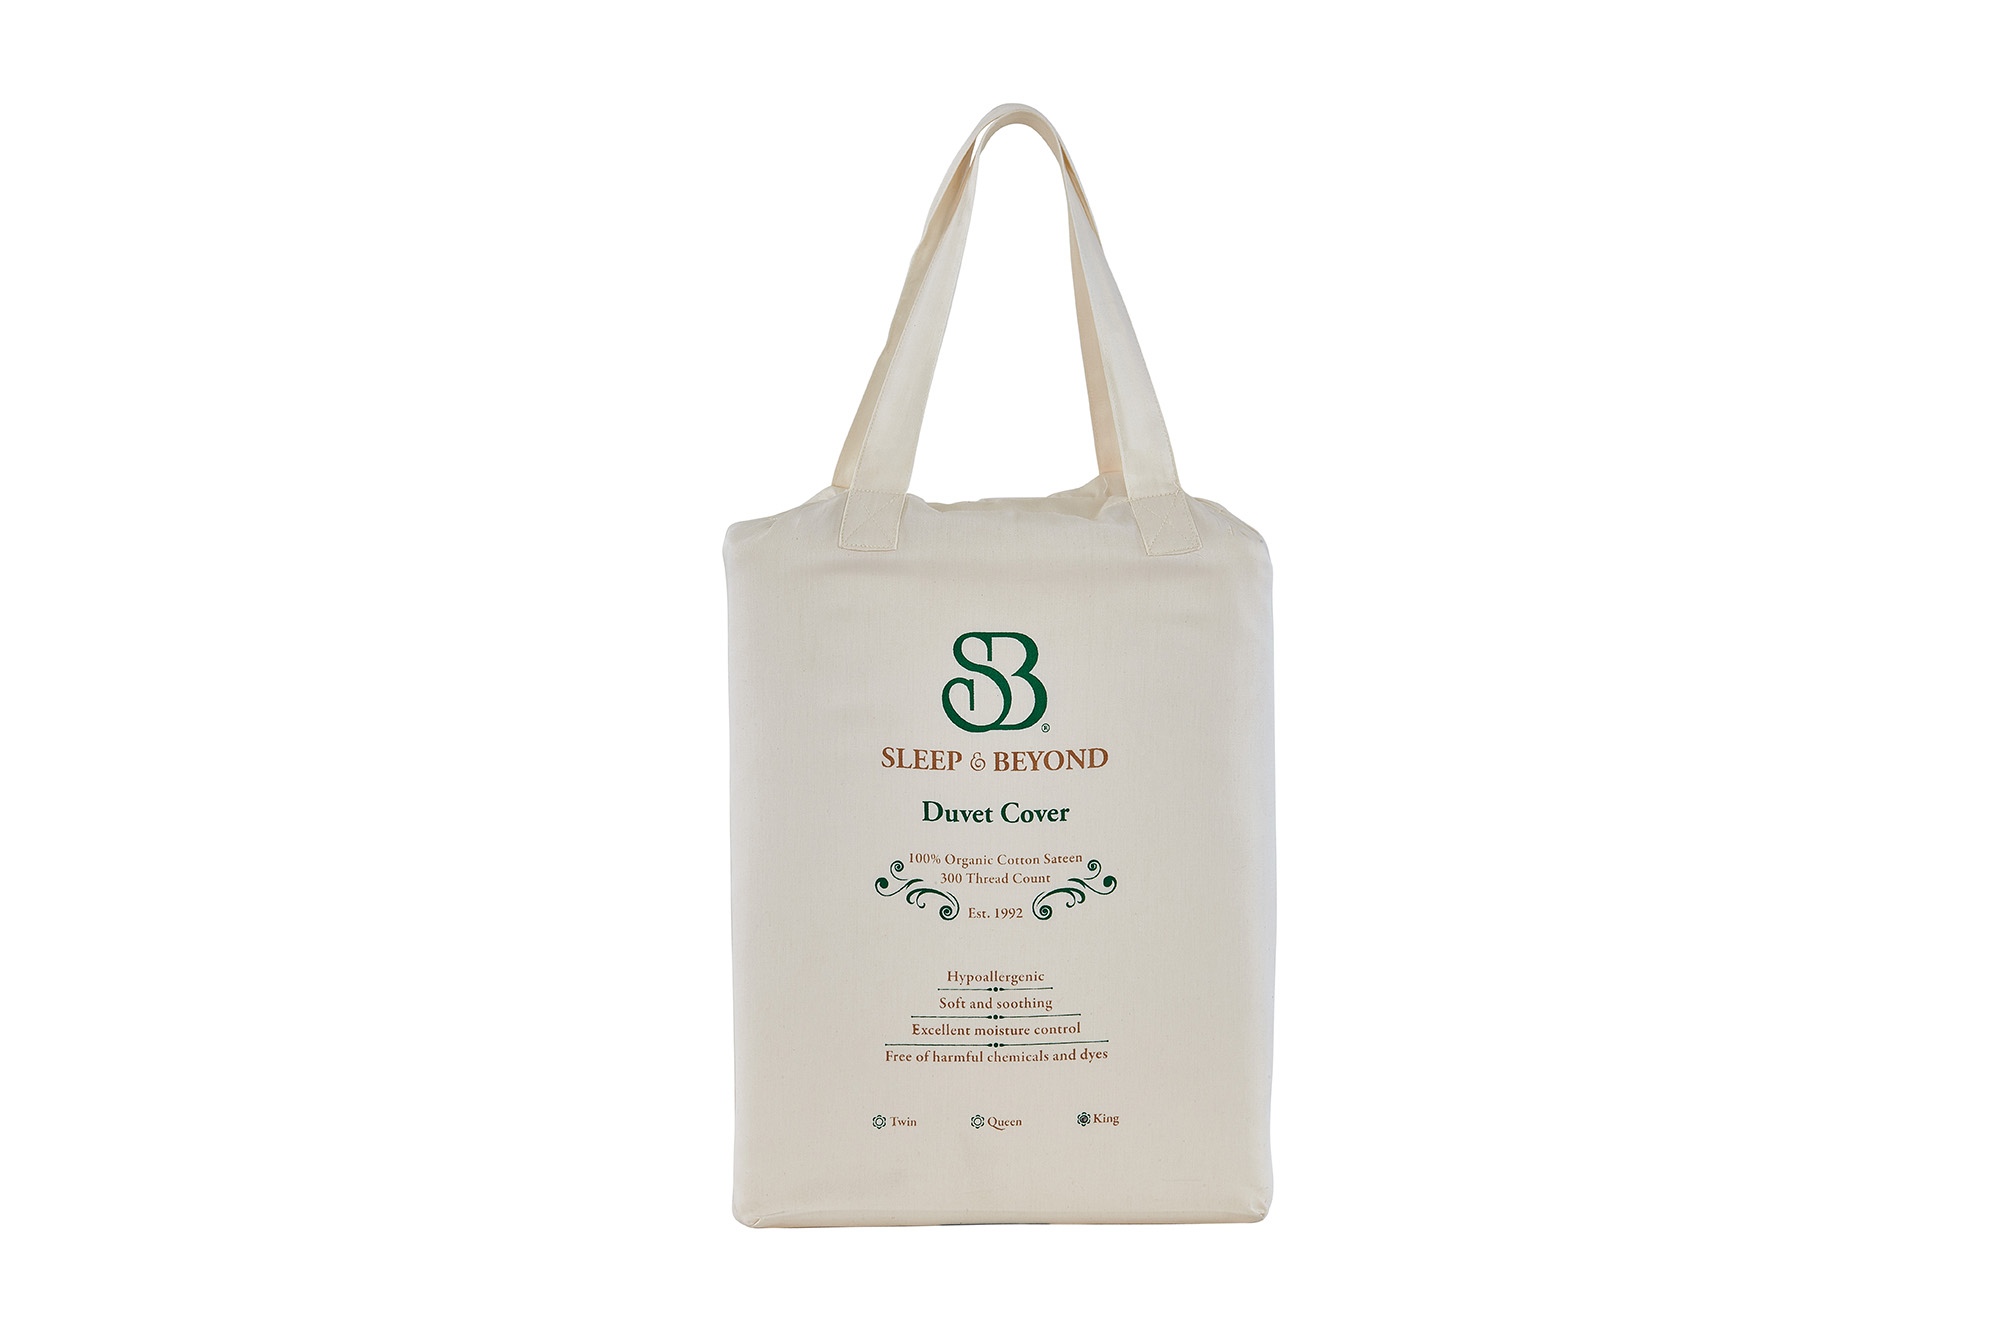 Organic Cotton Duvet Cover Packaging Front View